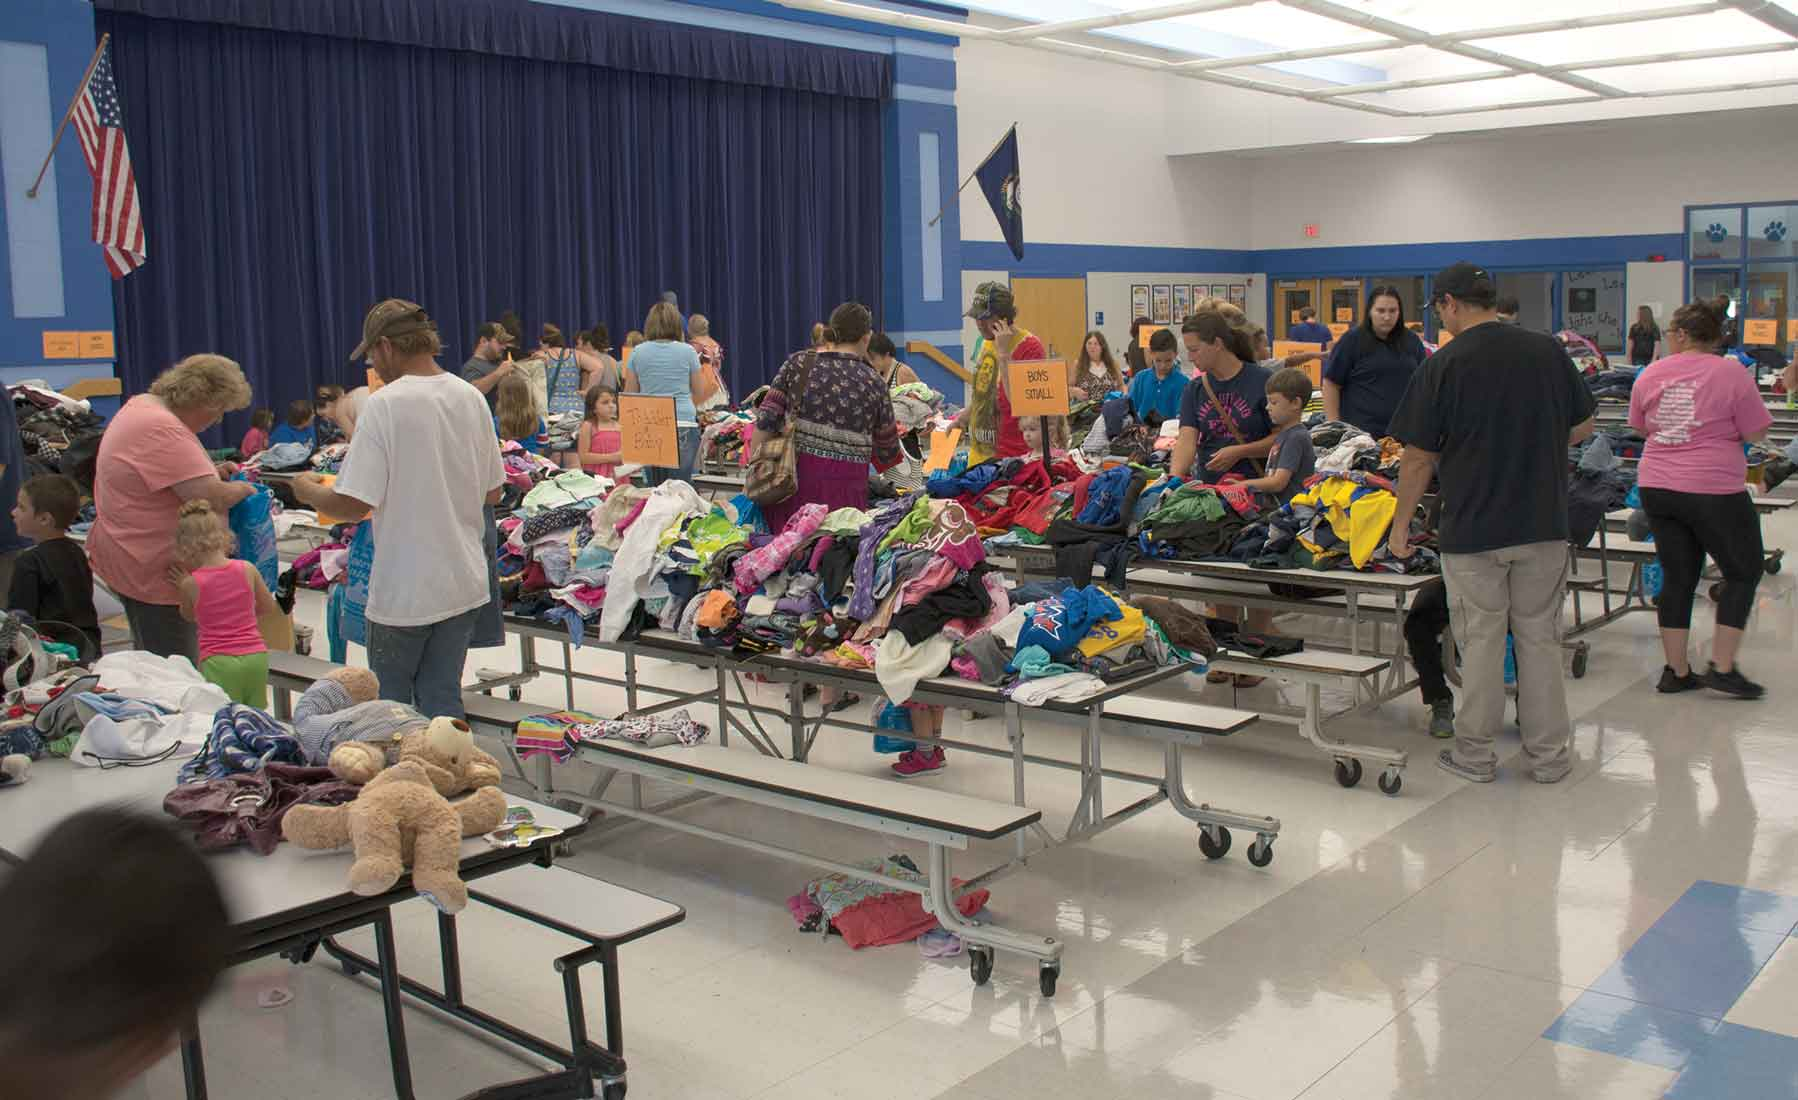 Parents and children look through tables loaded with donated clothing. Participants received a bag they could fill up during the fair. According to David Eddy, Trimble County's family resource coordinator,  almost 500 people attended this year's event.